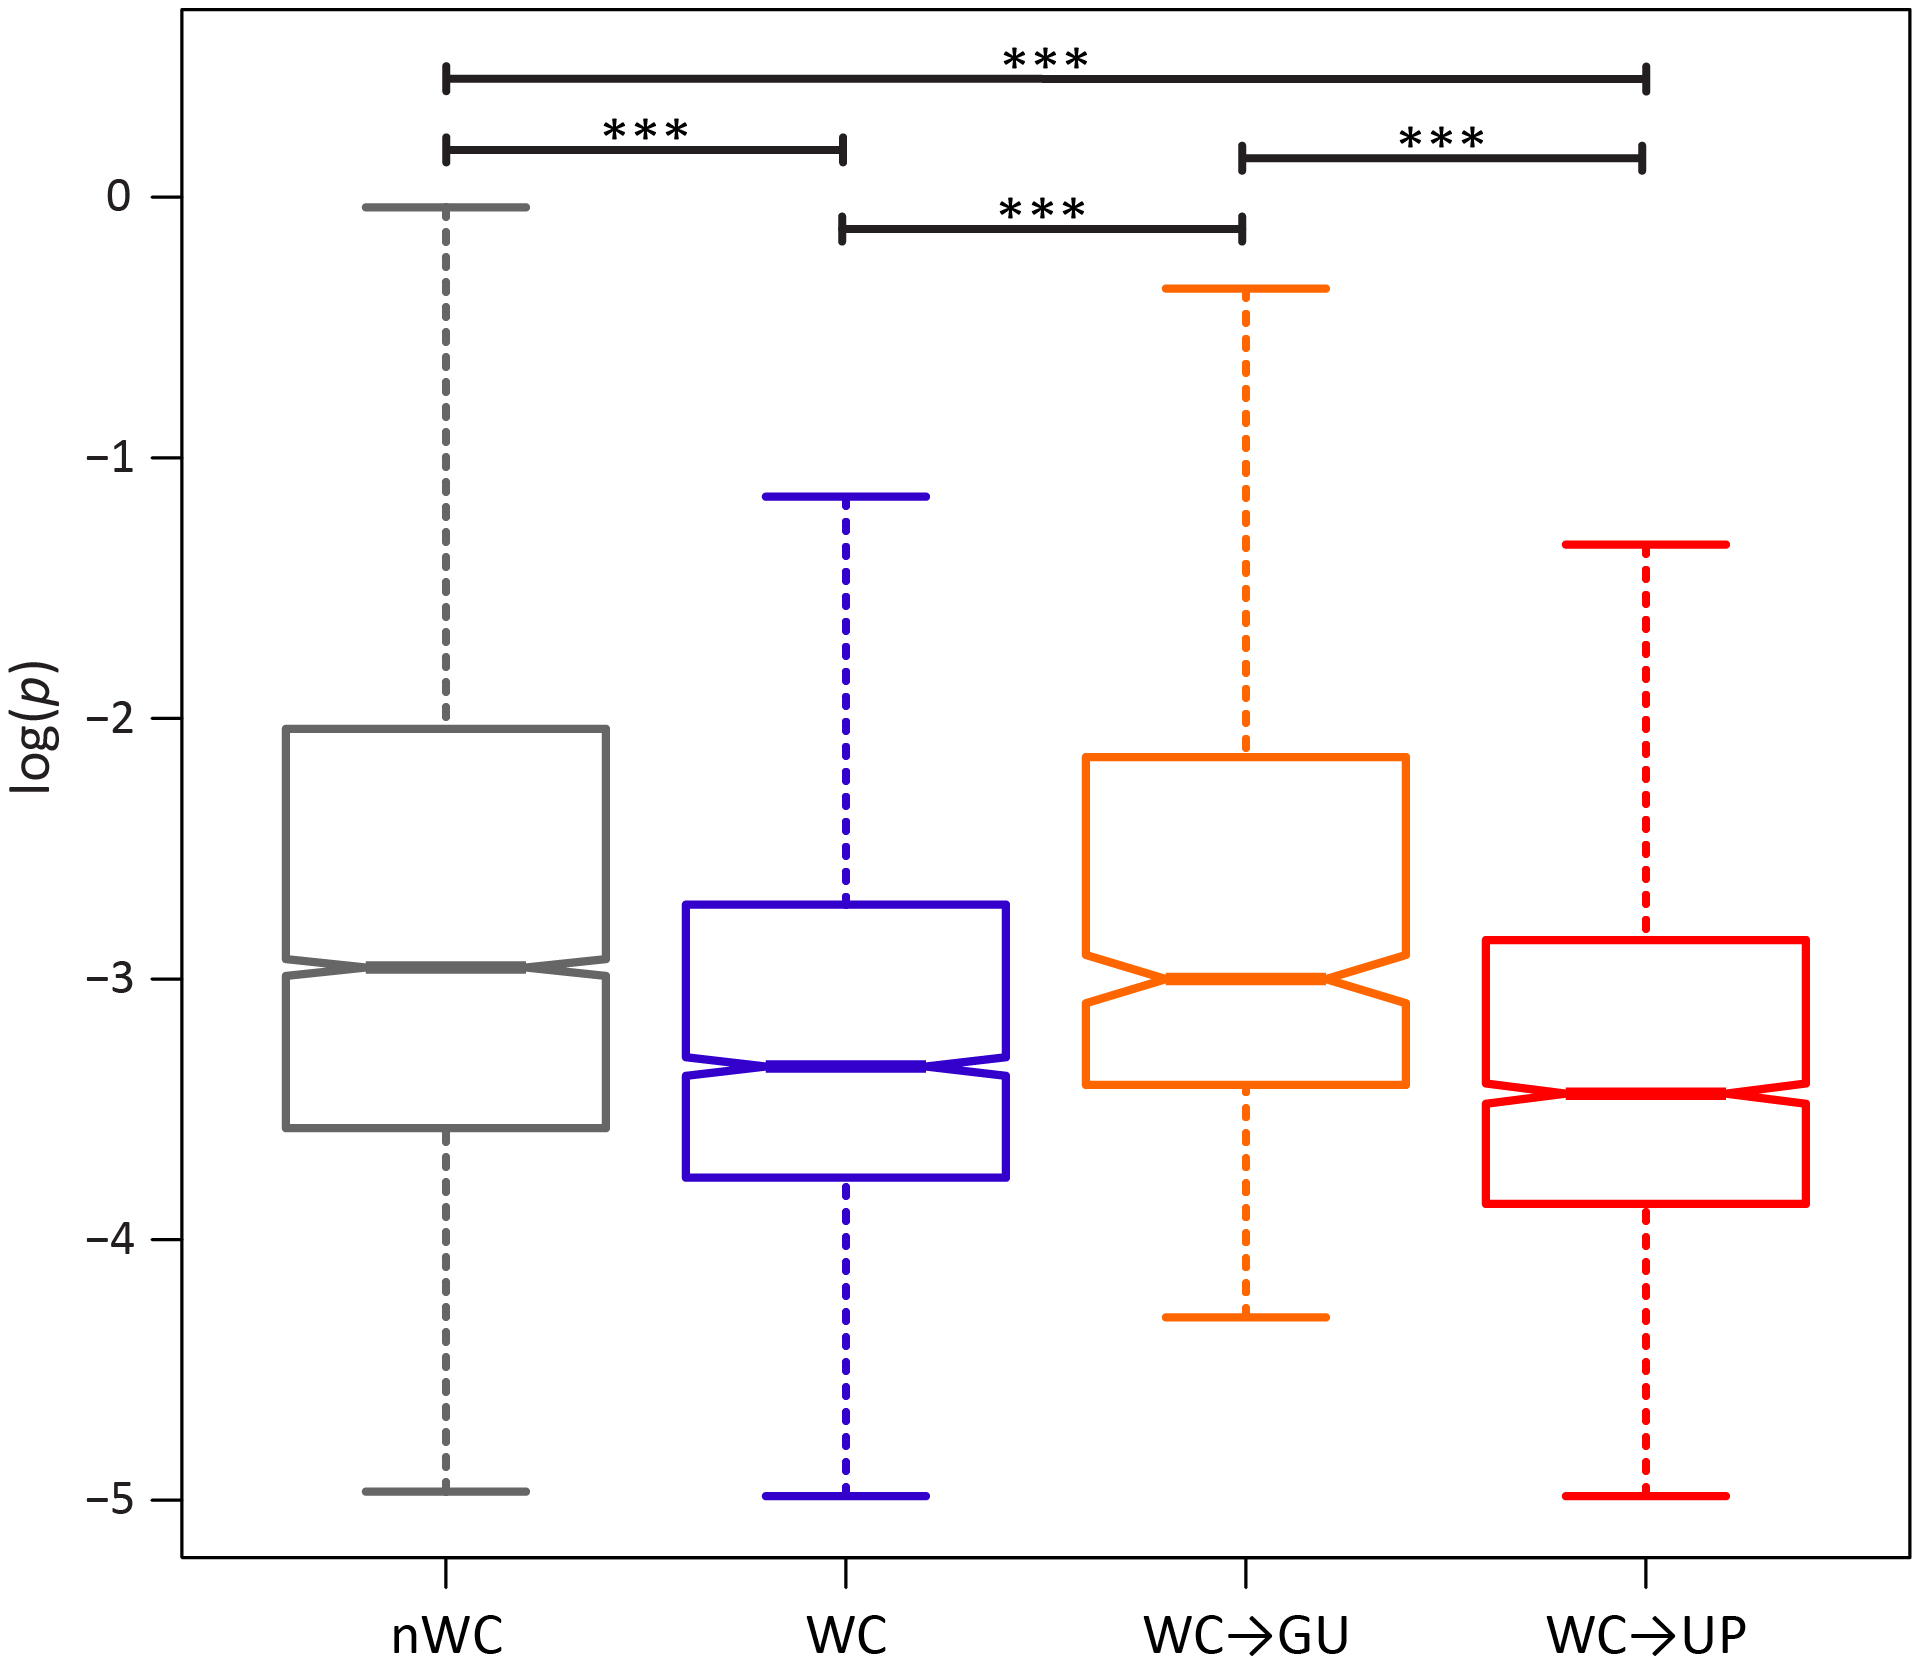 Intra-population frequencies of nWC and single-site WC replacement polymorphisms in the HIV-1 genome.